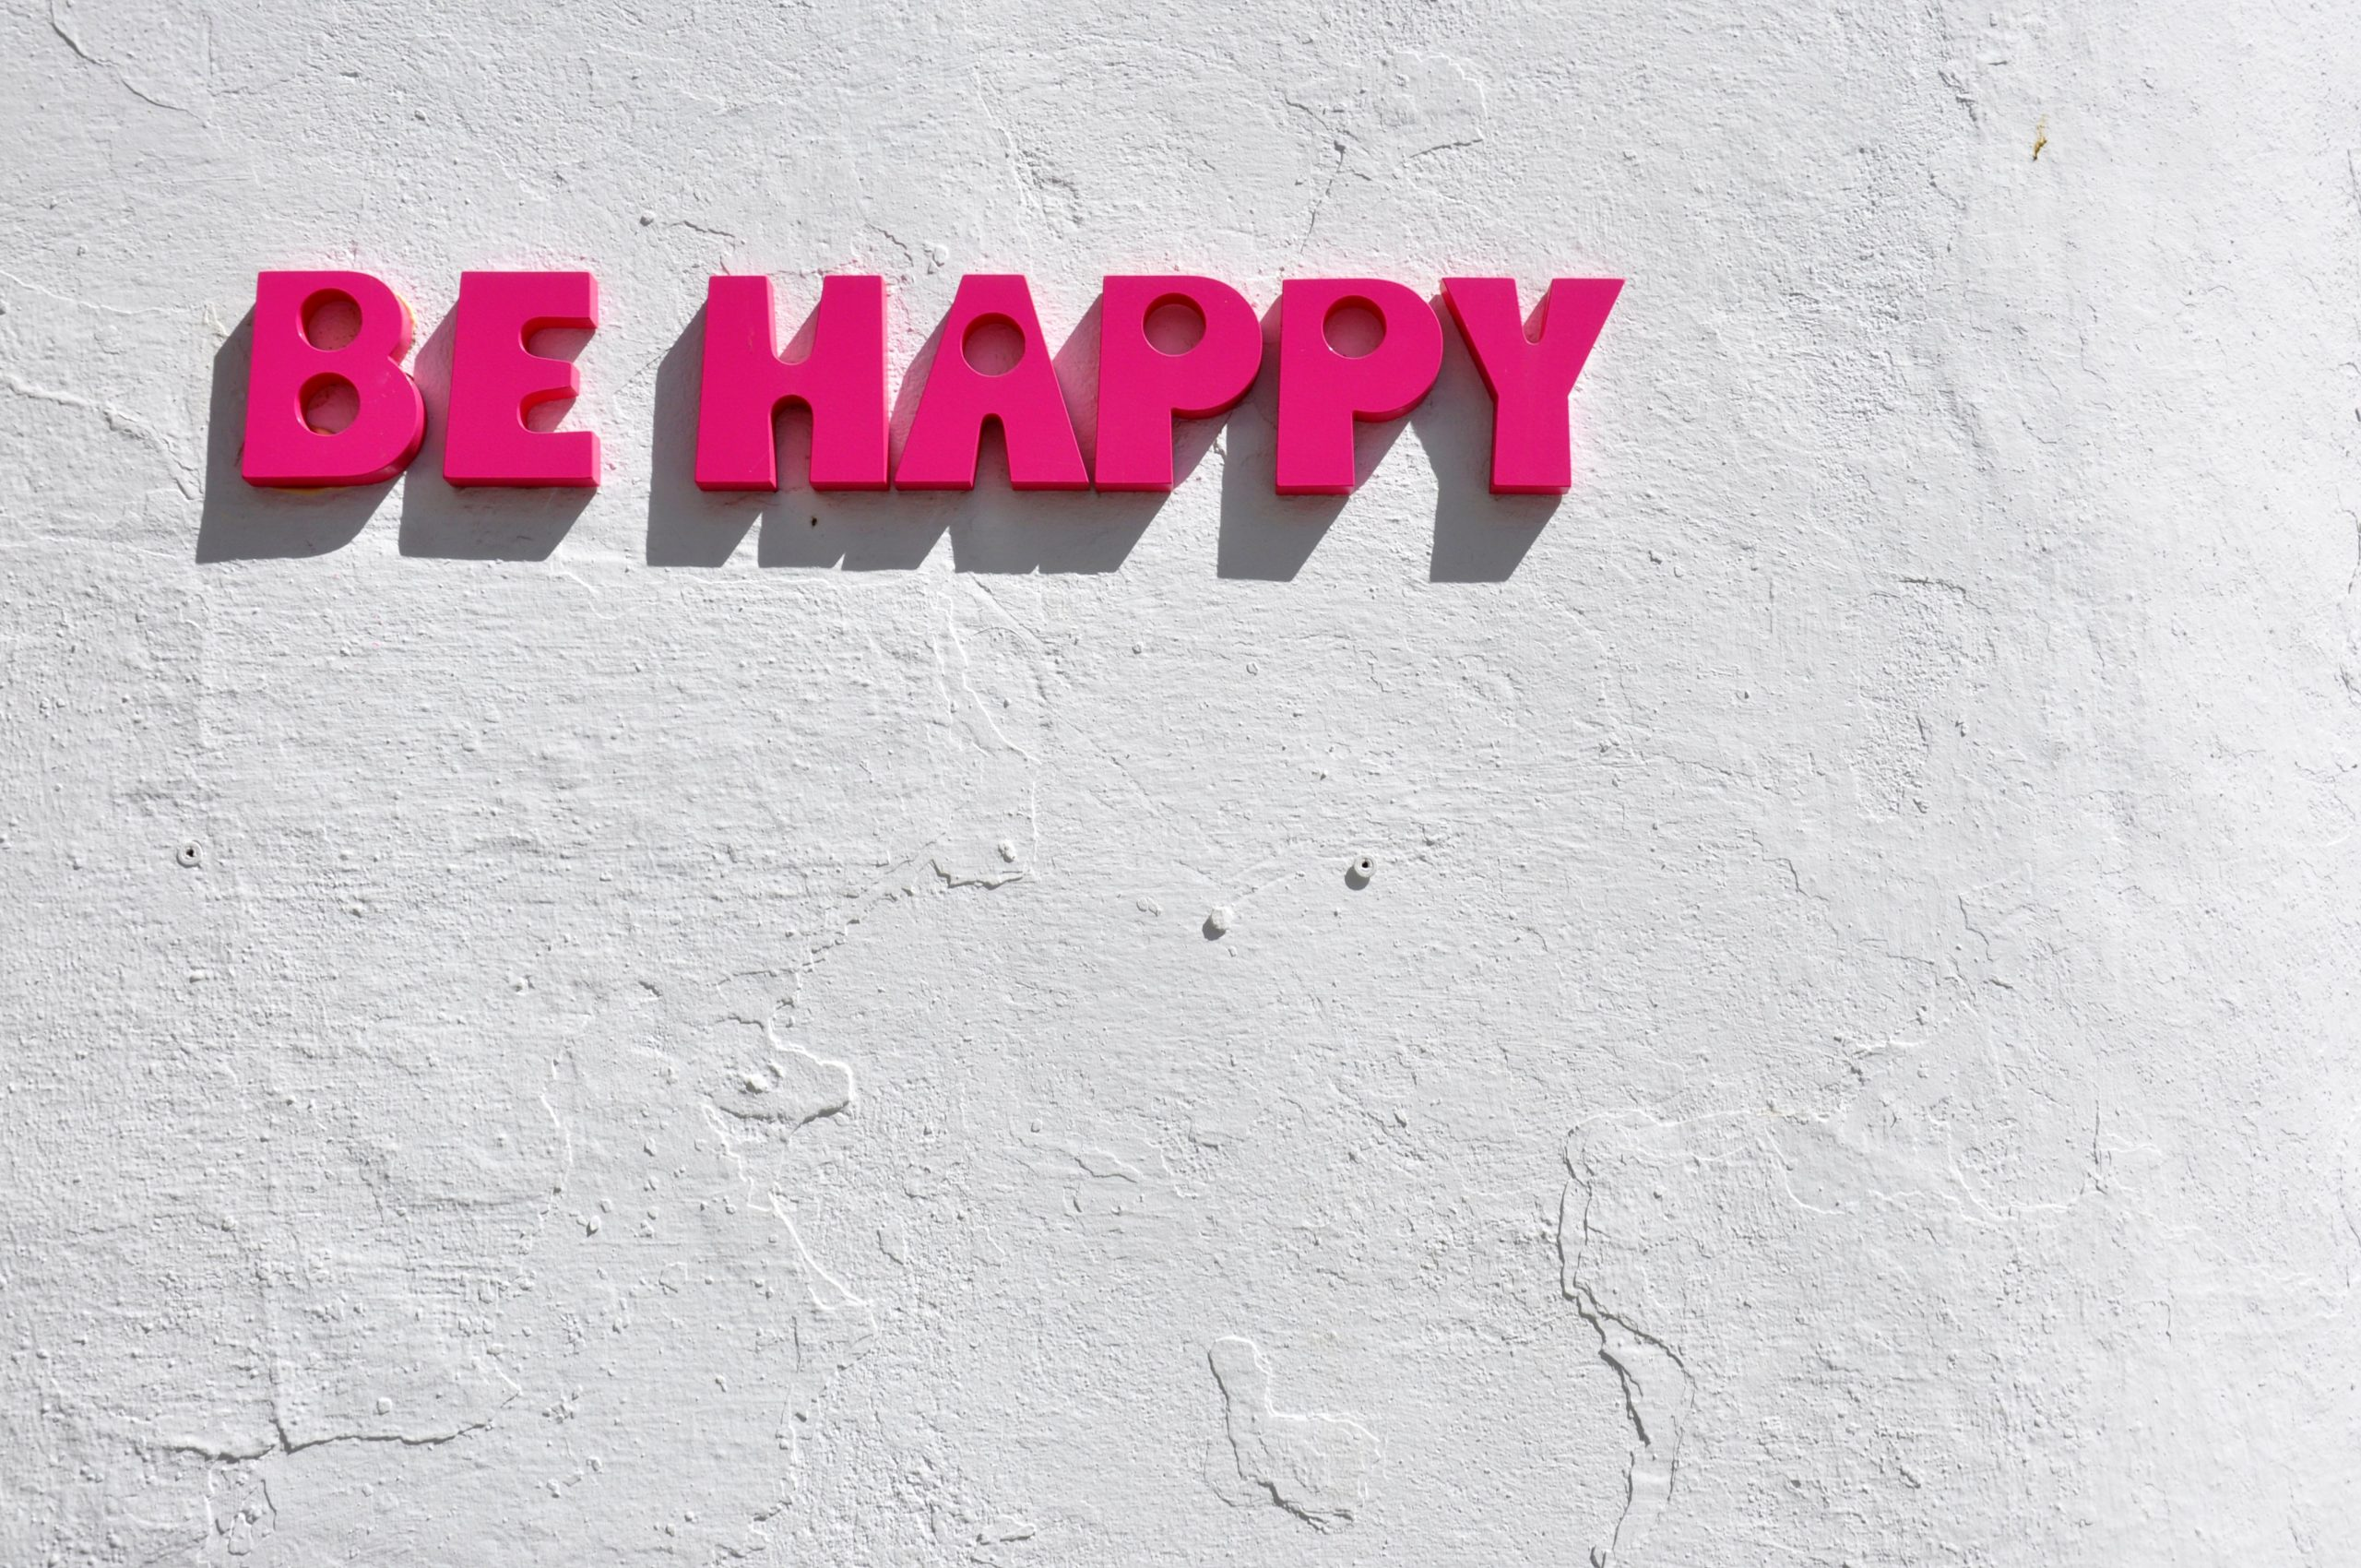 Affirmations - Be Happy